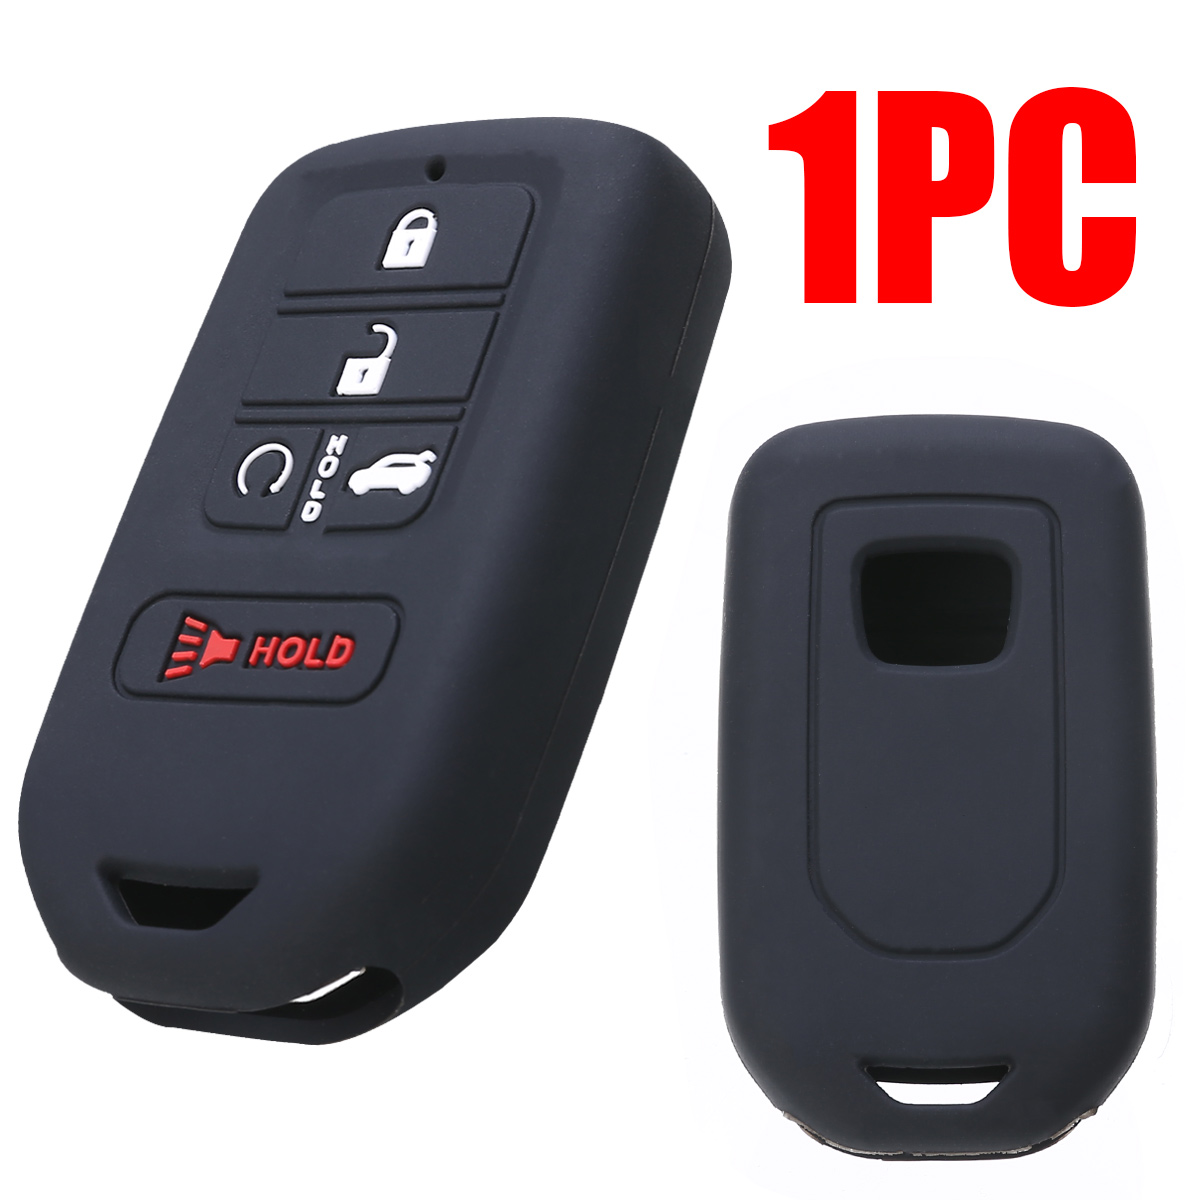 Pack of 2 Silicone Remote Car Key Fob Cover Case for Honda Accord Civic HR-V